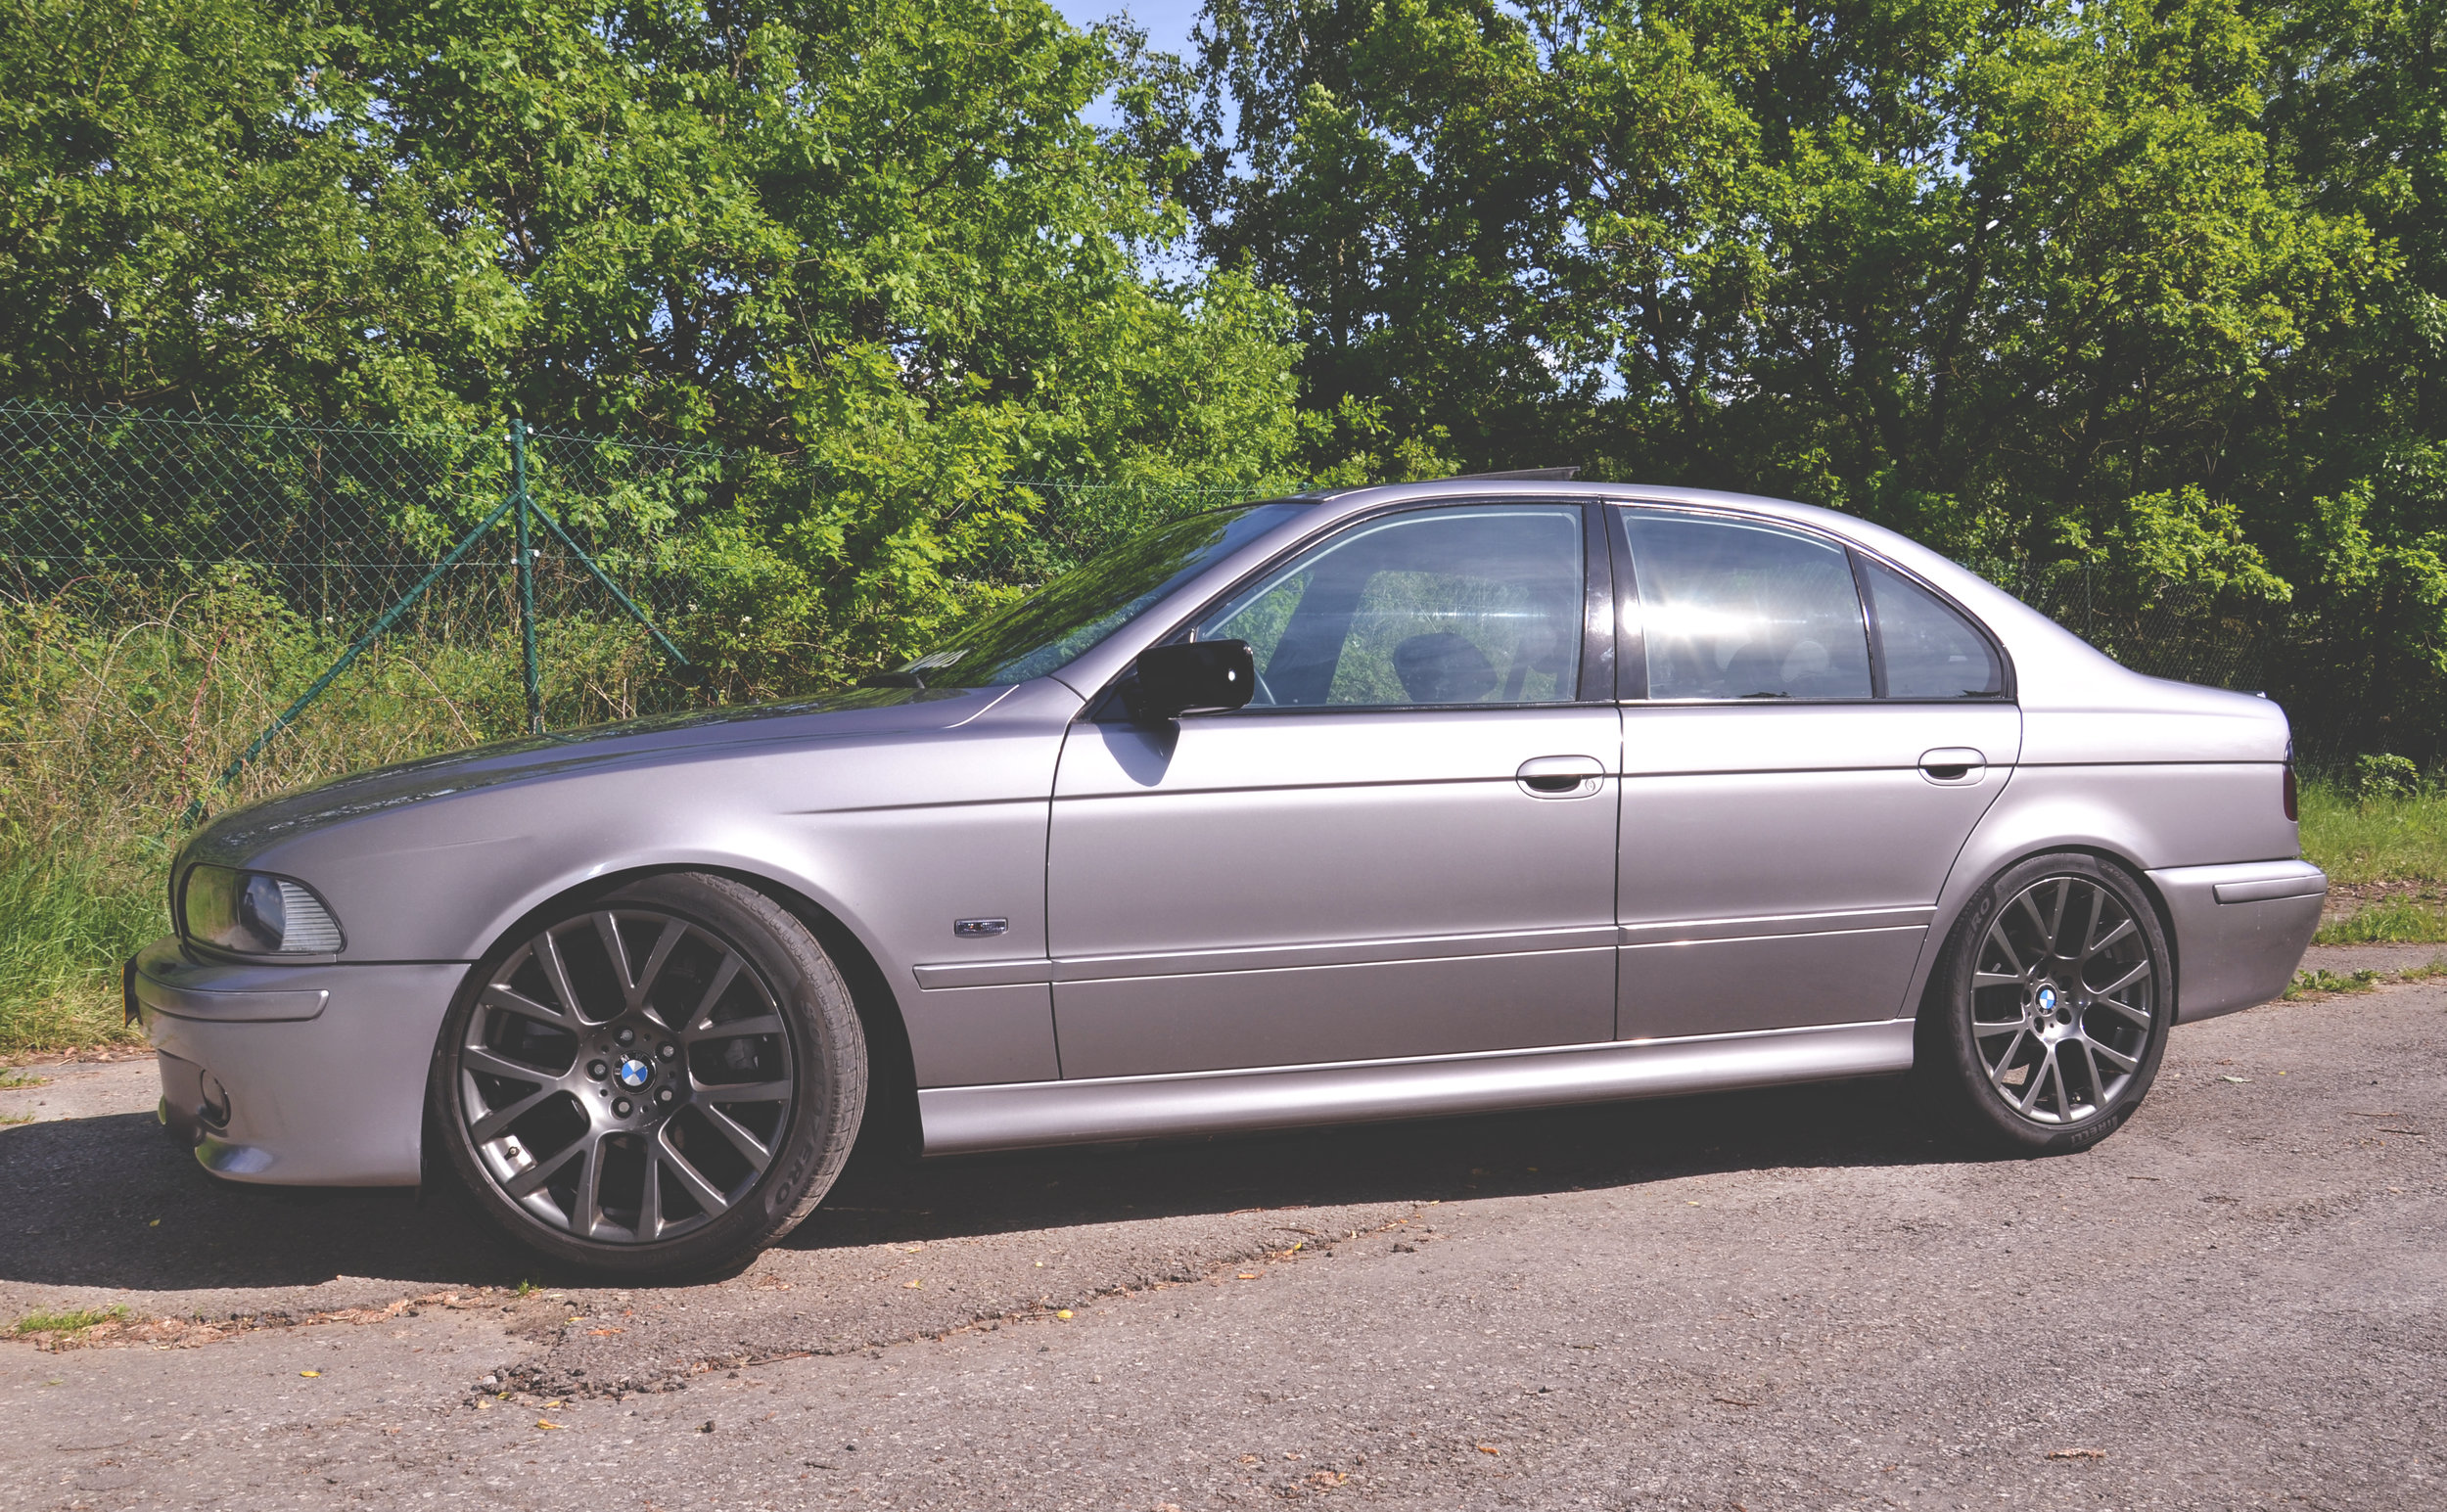 Mömus BMW E39 Bumpers M Sport Paint and Finish Aspen silver Final results side